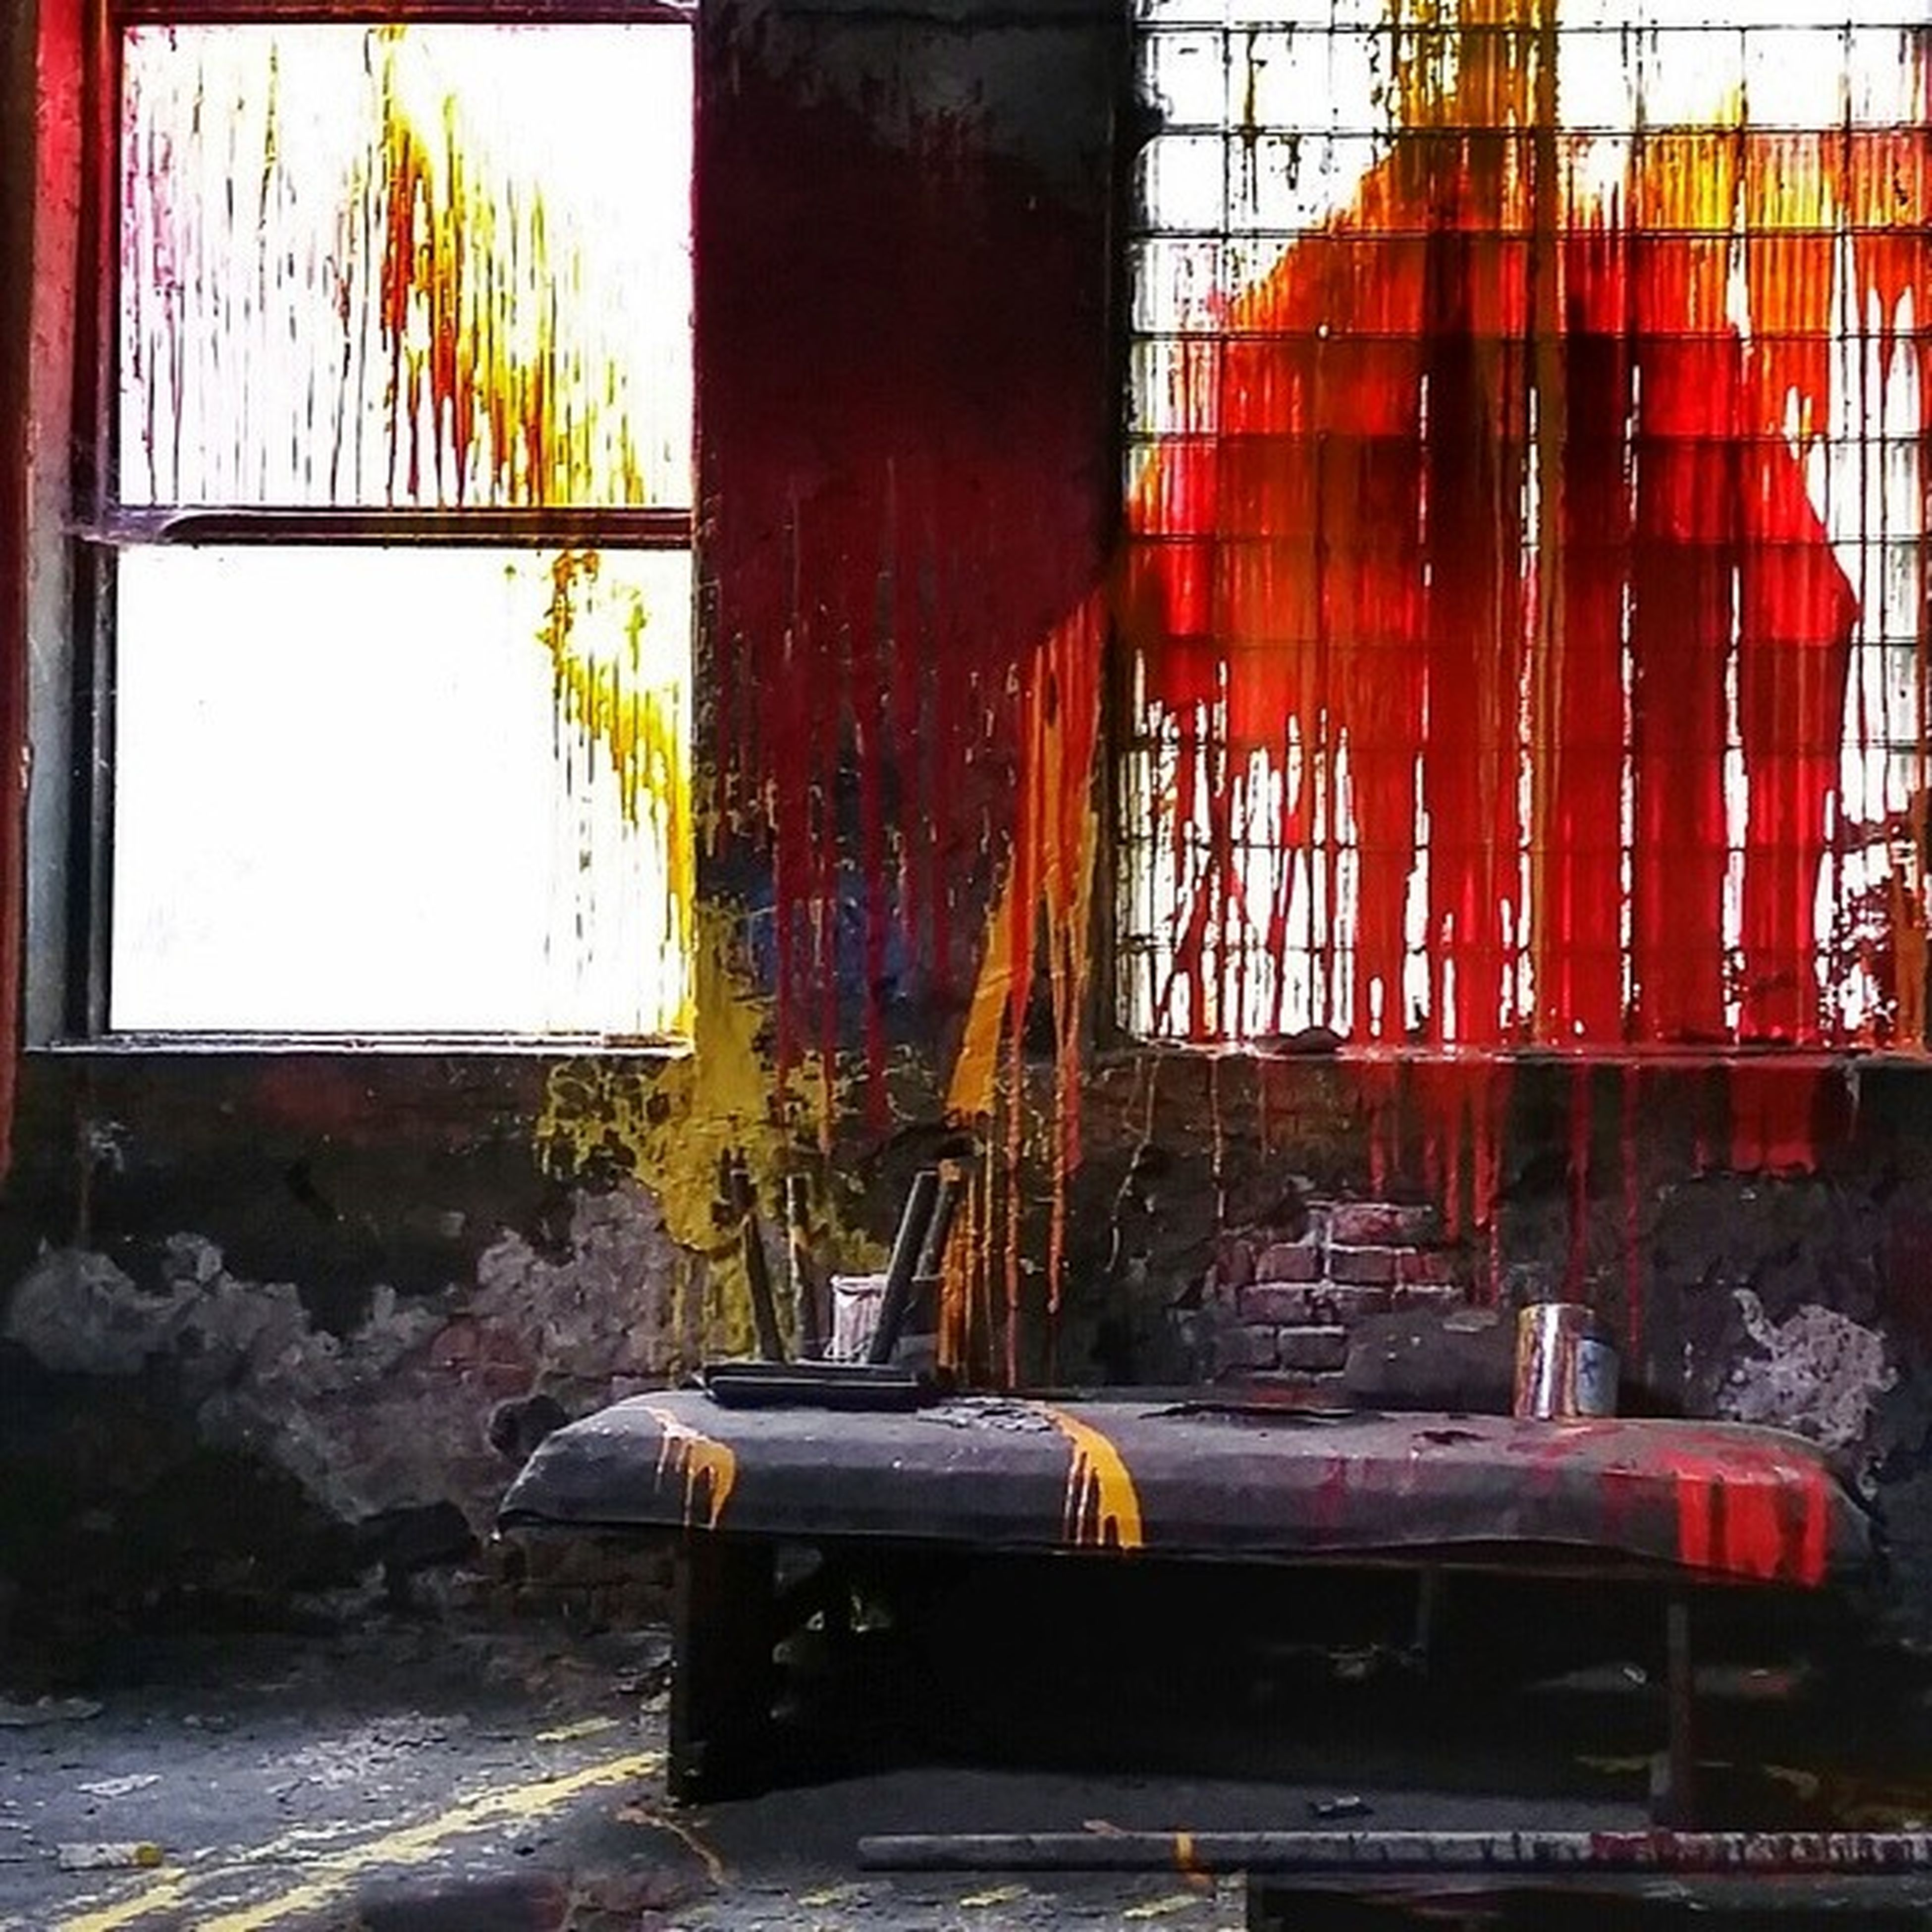 architecture, built structure, building exterior, window, transfer print, auto post production filter, abandoned, glass - material, graffiti, wall - building feature, damaged, day, chair, obsolete, indoors, city, building, absence, sunlight, no people